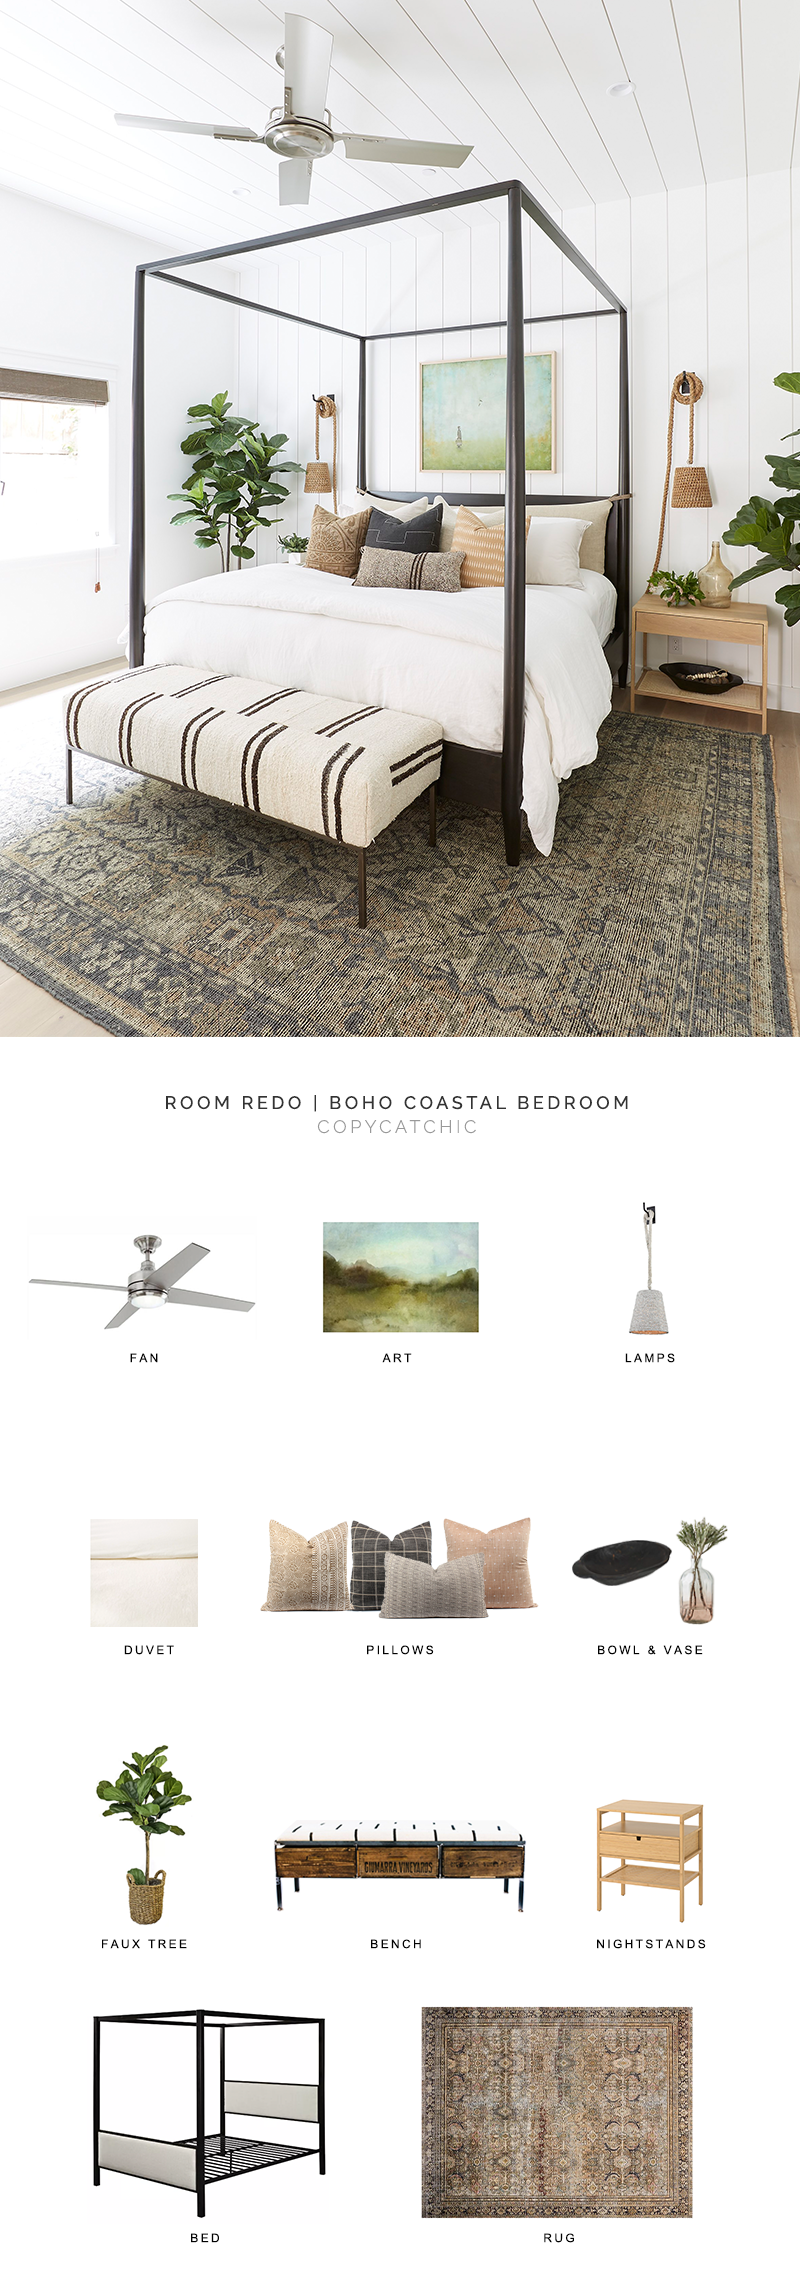 california style bedroom look for less, boho coastal bedroom, copycatchic luxe living for less, budget home decor and design, daily finds, home trends, sales, budget travel and room redos